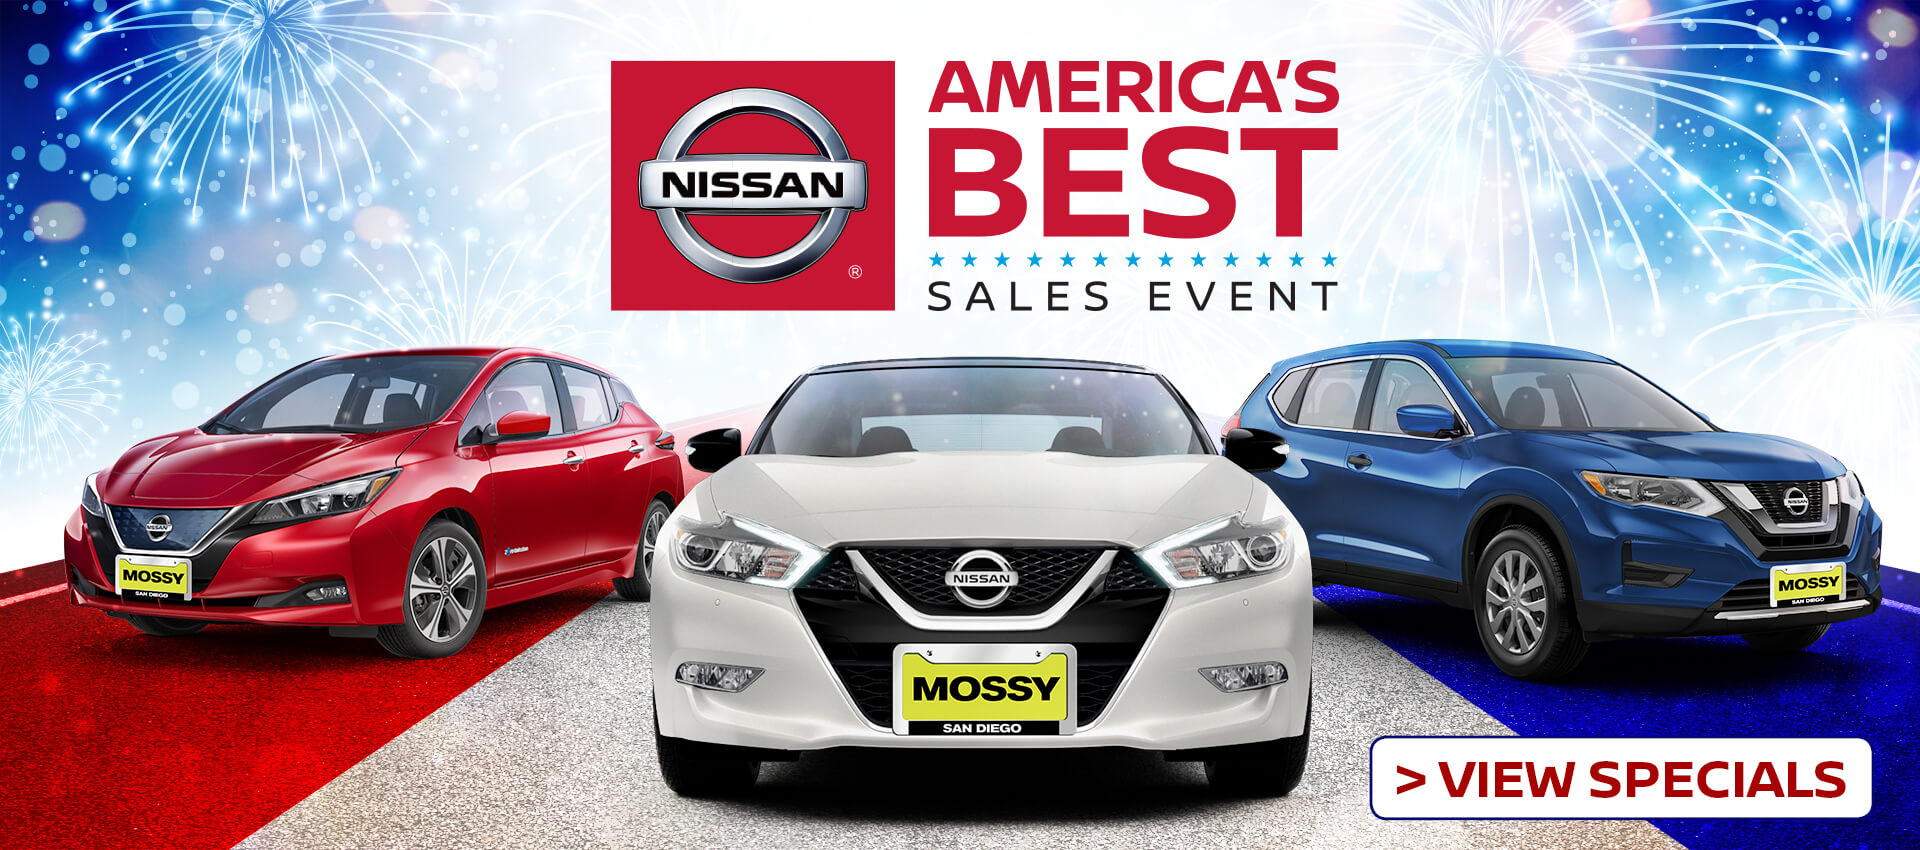 new 2017 2018 nissan used car dealer in san diego ca mossy nissan 7 locations. Black Bedroom Furniture Sets. Home Design Ideas